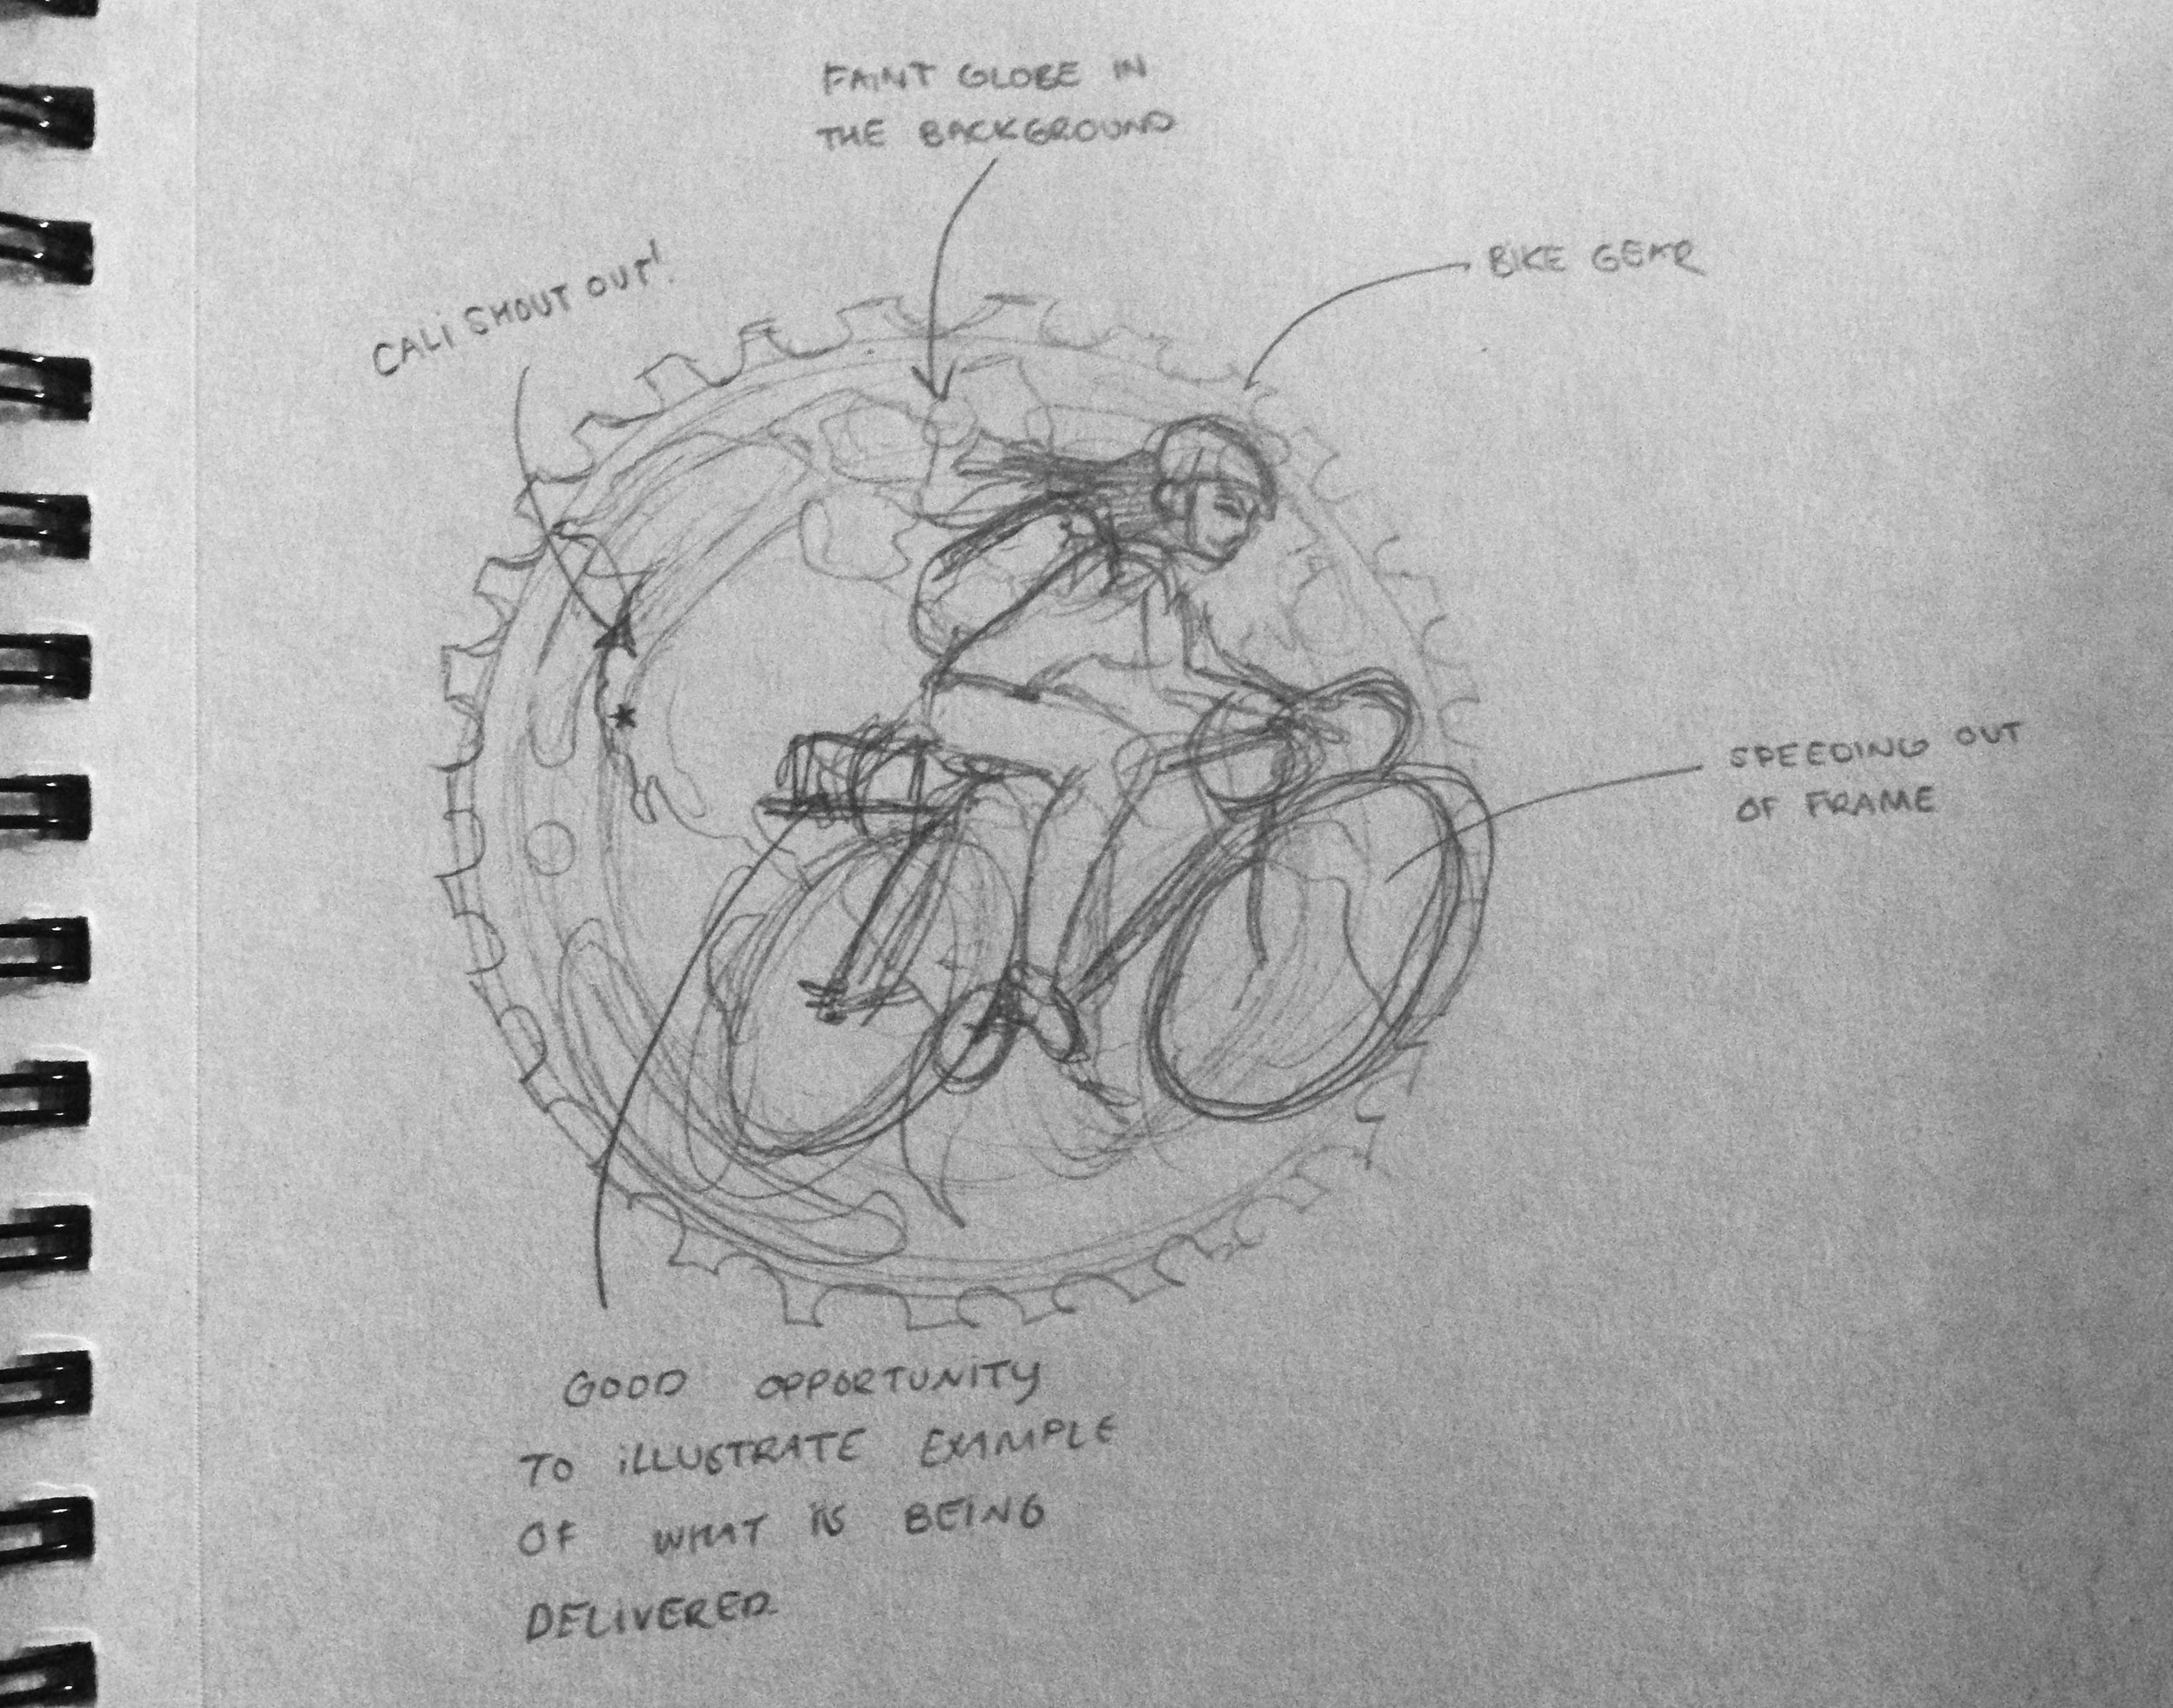 One of the initial sketches provided by Adrianne Ngam for what would eventually become our Cowgirl Bike Courier logo.